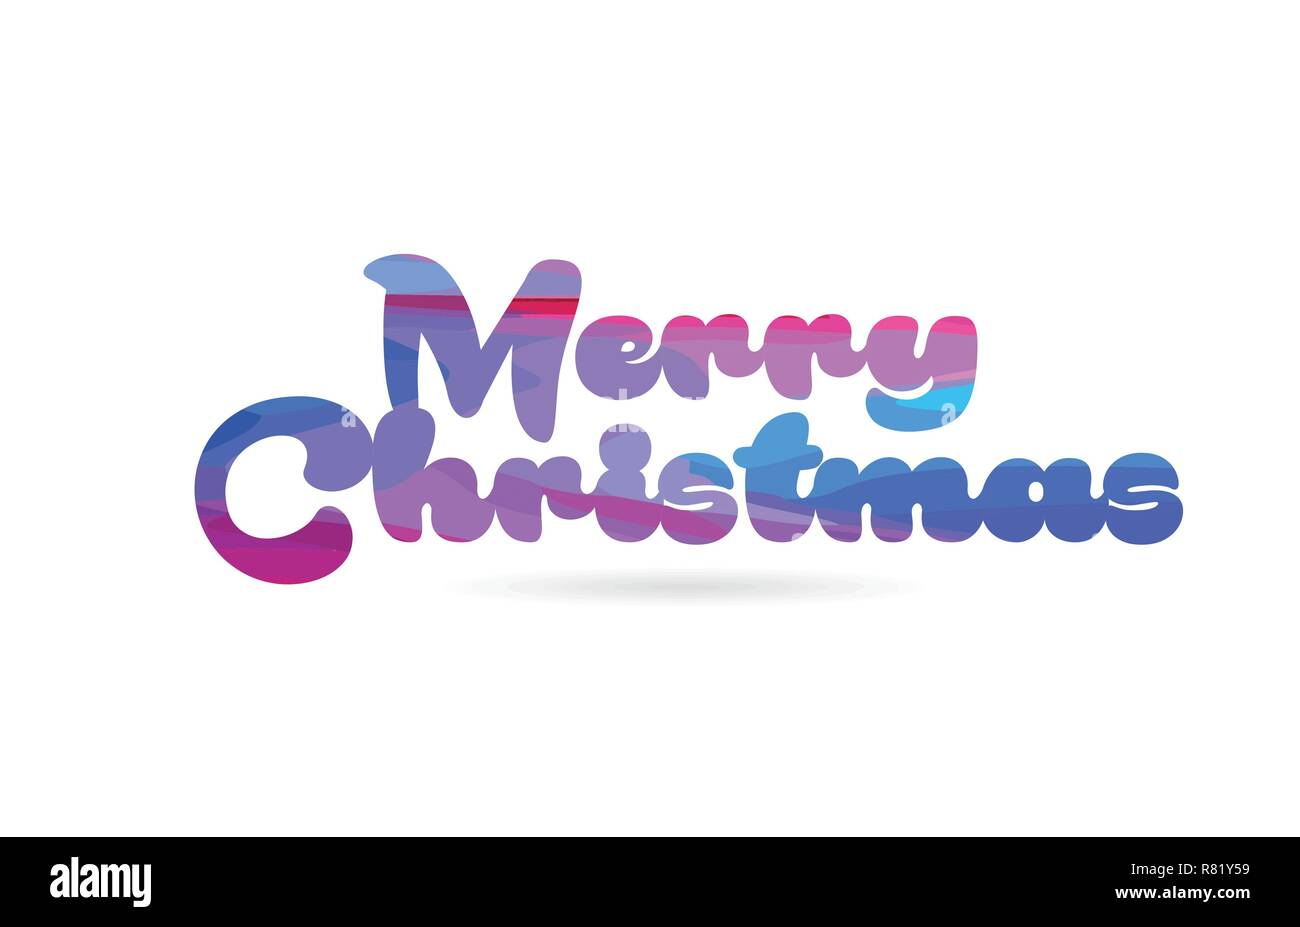 Merry Christmas Word With Pink Blue Color Suitable For Card